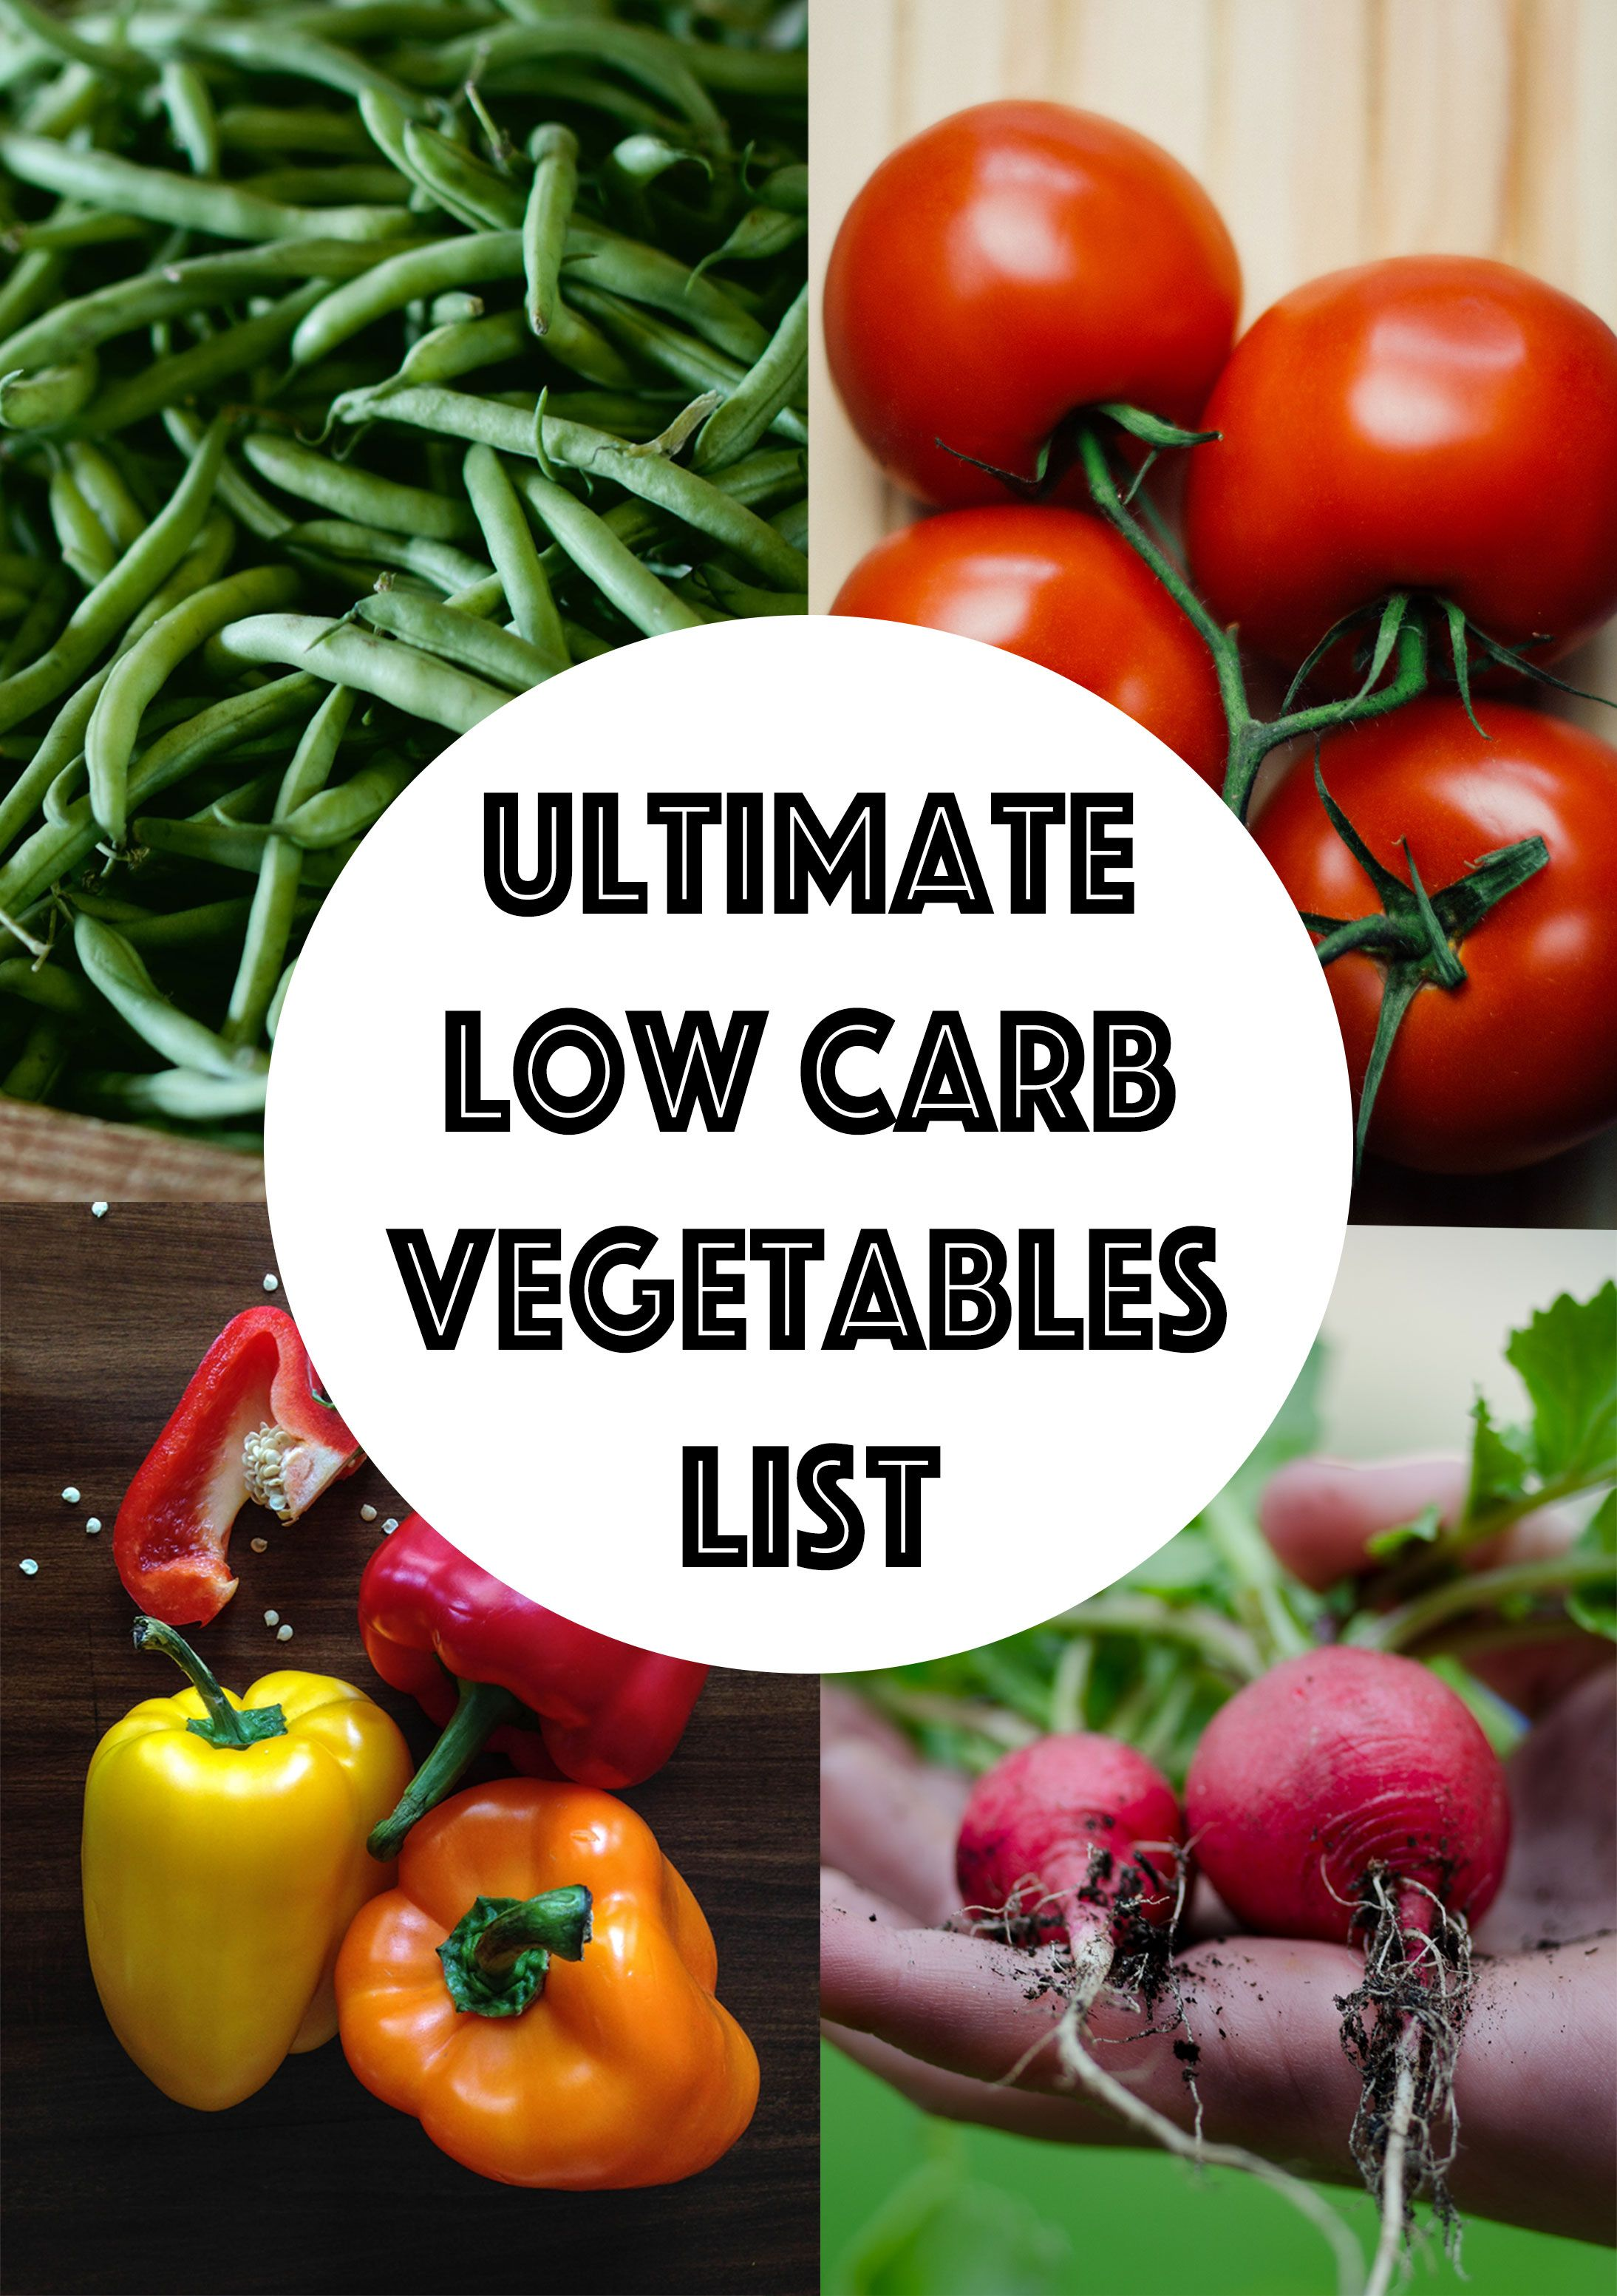 Low Carb Vegetables List Searchable & Sortable Guide